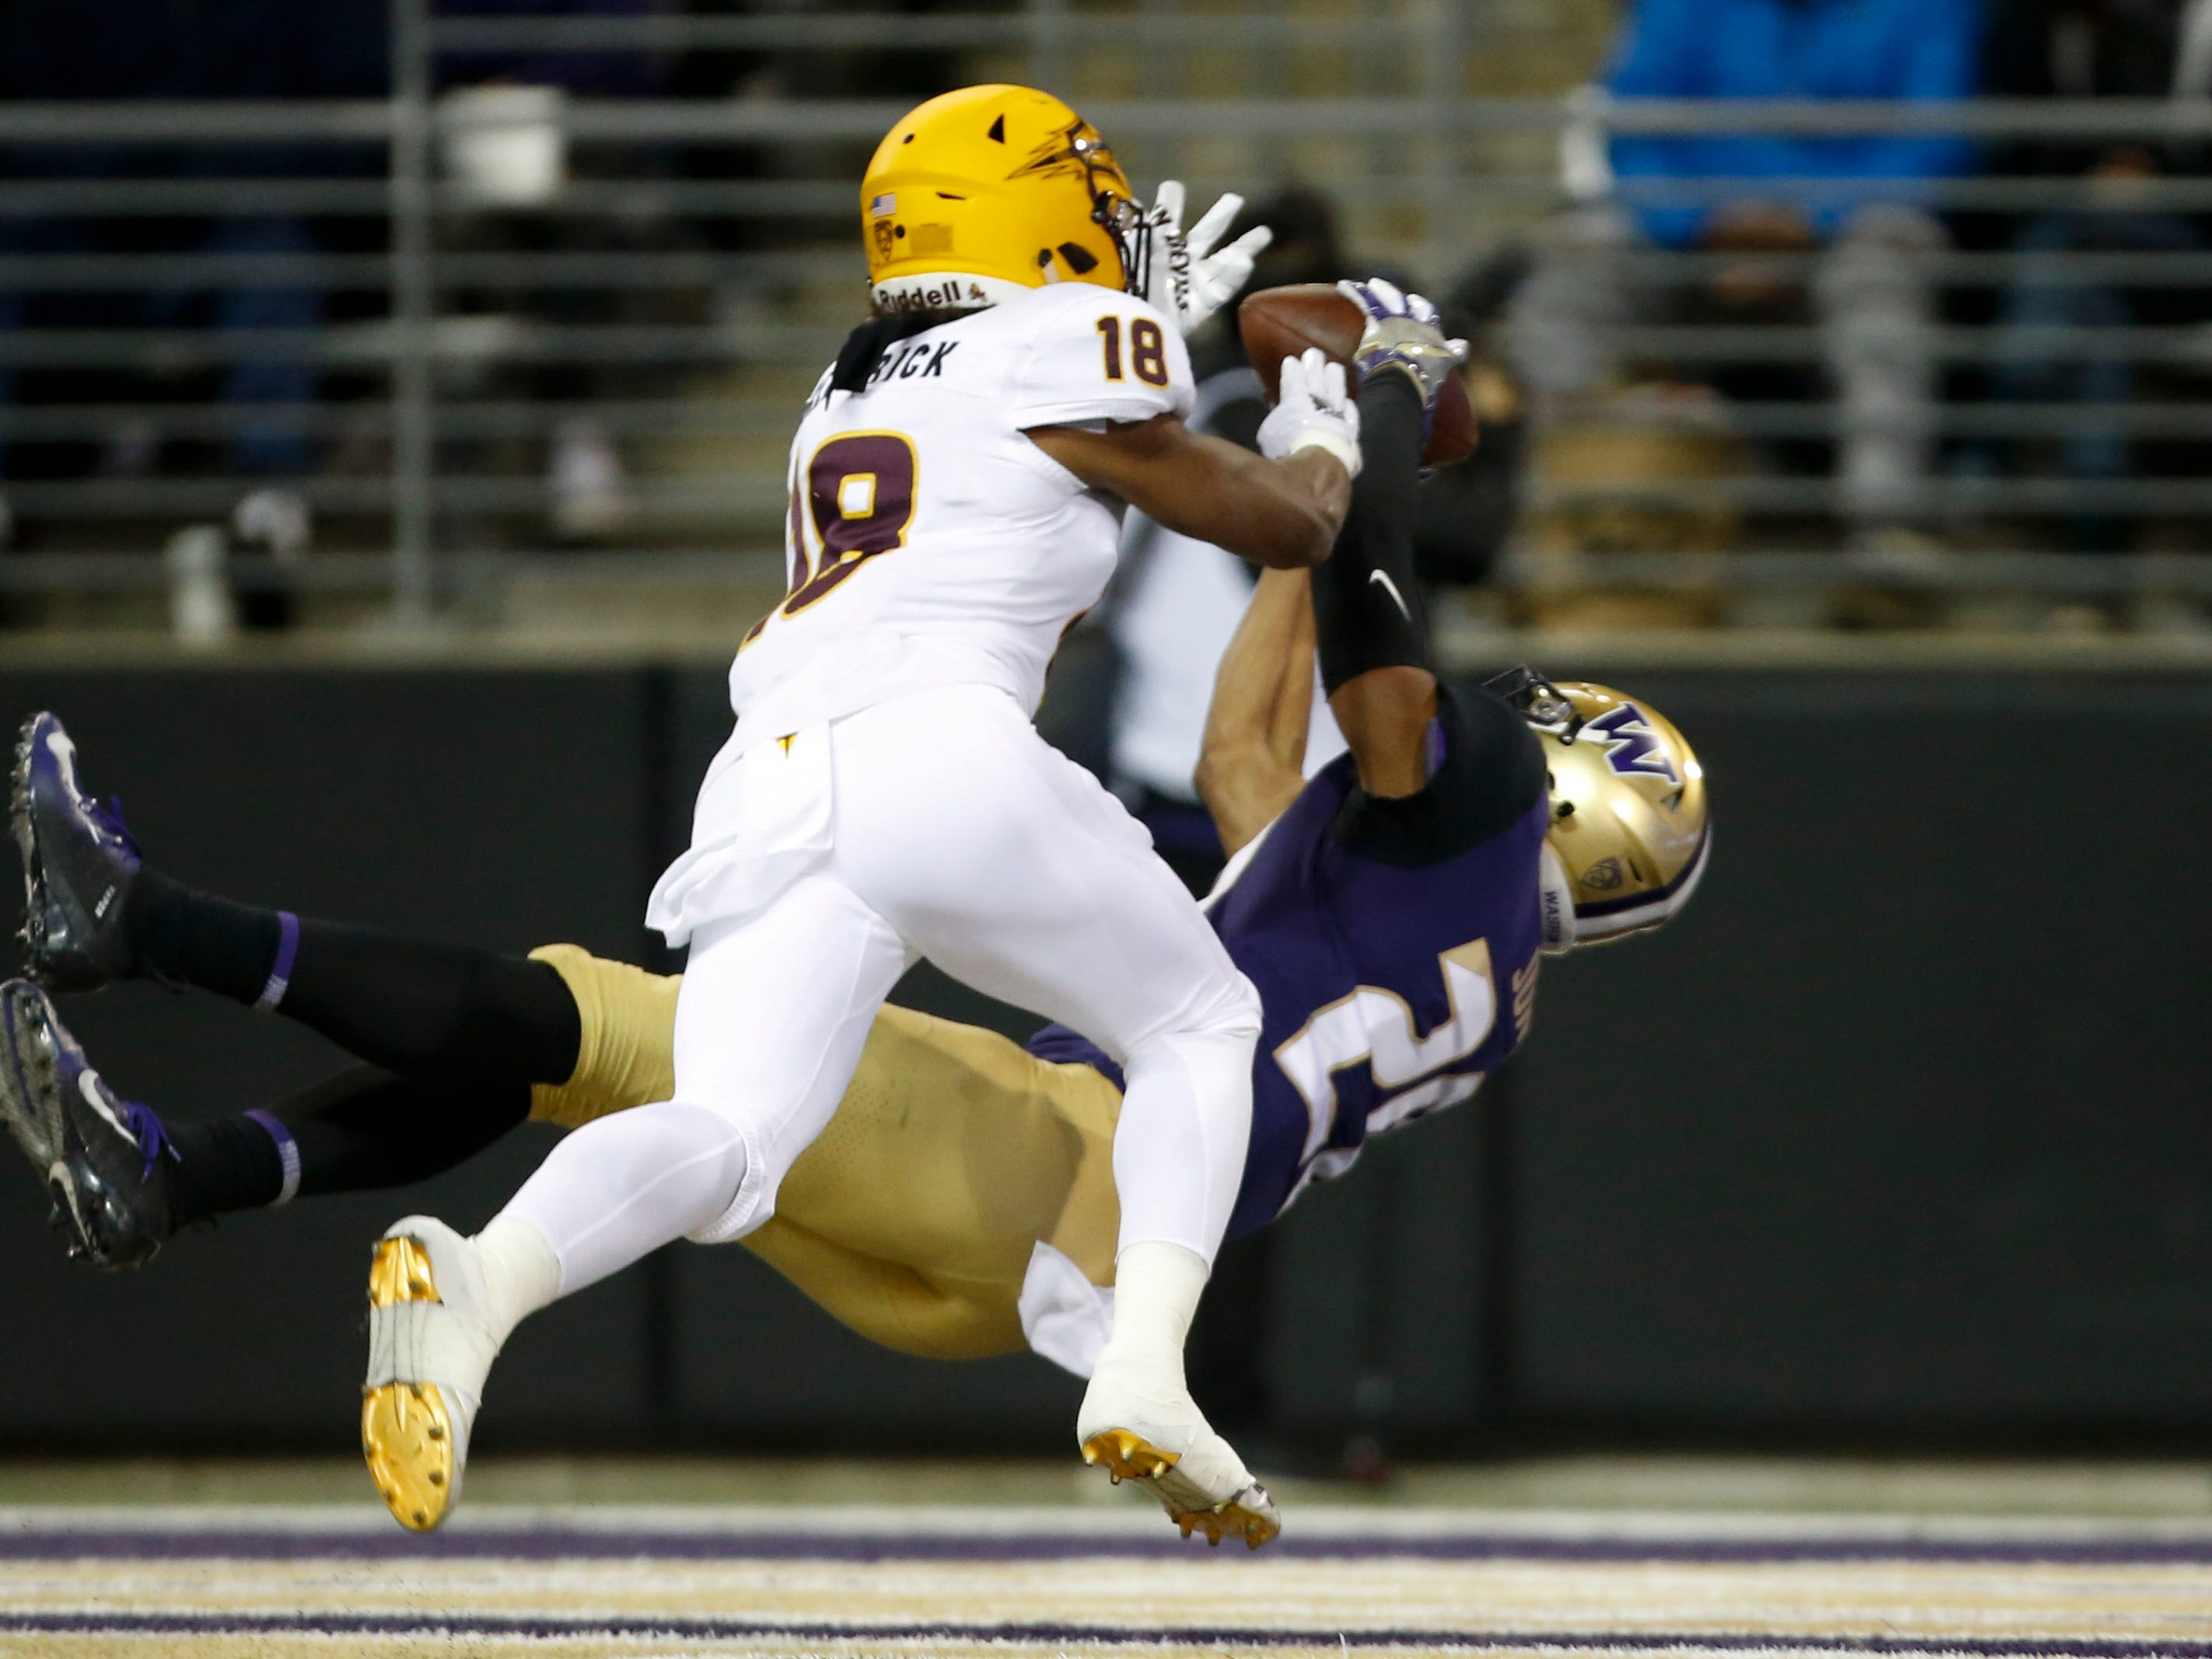 Sep 22, 2018; Seattle, WA, USA; Washington Huskies wide receiver Ty Jones (20) catches a touchdown pass over Arizona State Sun Devils cornerback Langston Frederick (18) during the first quarter at Husky Stadium.